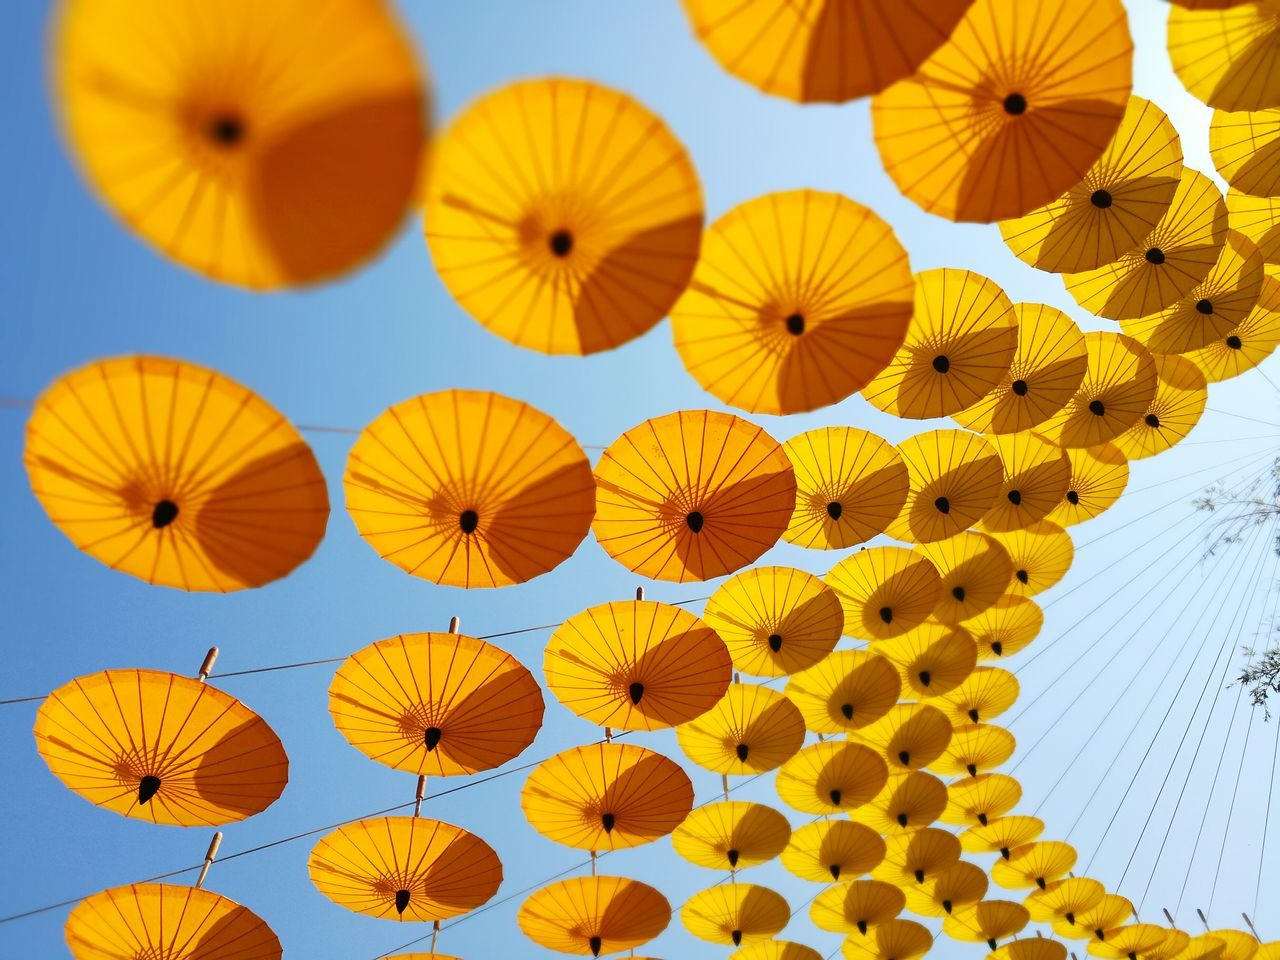 Yellow orange umbrellas hanging from low angle Multi Colored Low Angle View Objects Decoration Orange Red Architecture Day Sky Outdoors Backgrounds No People Hanging Yellow